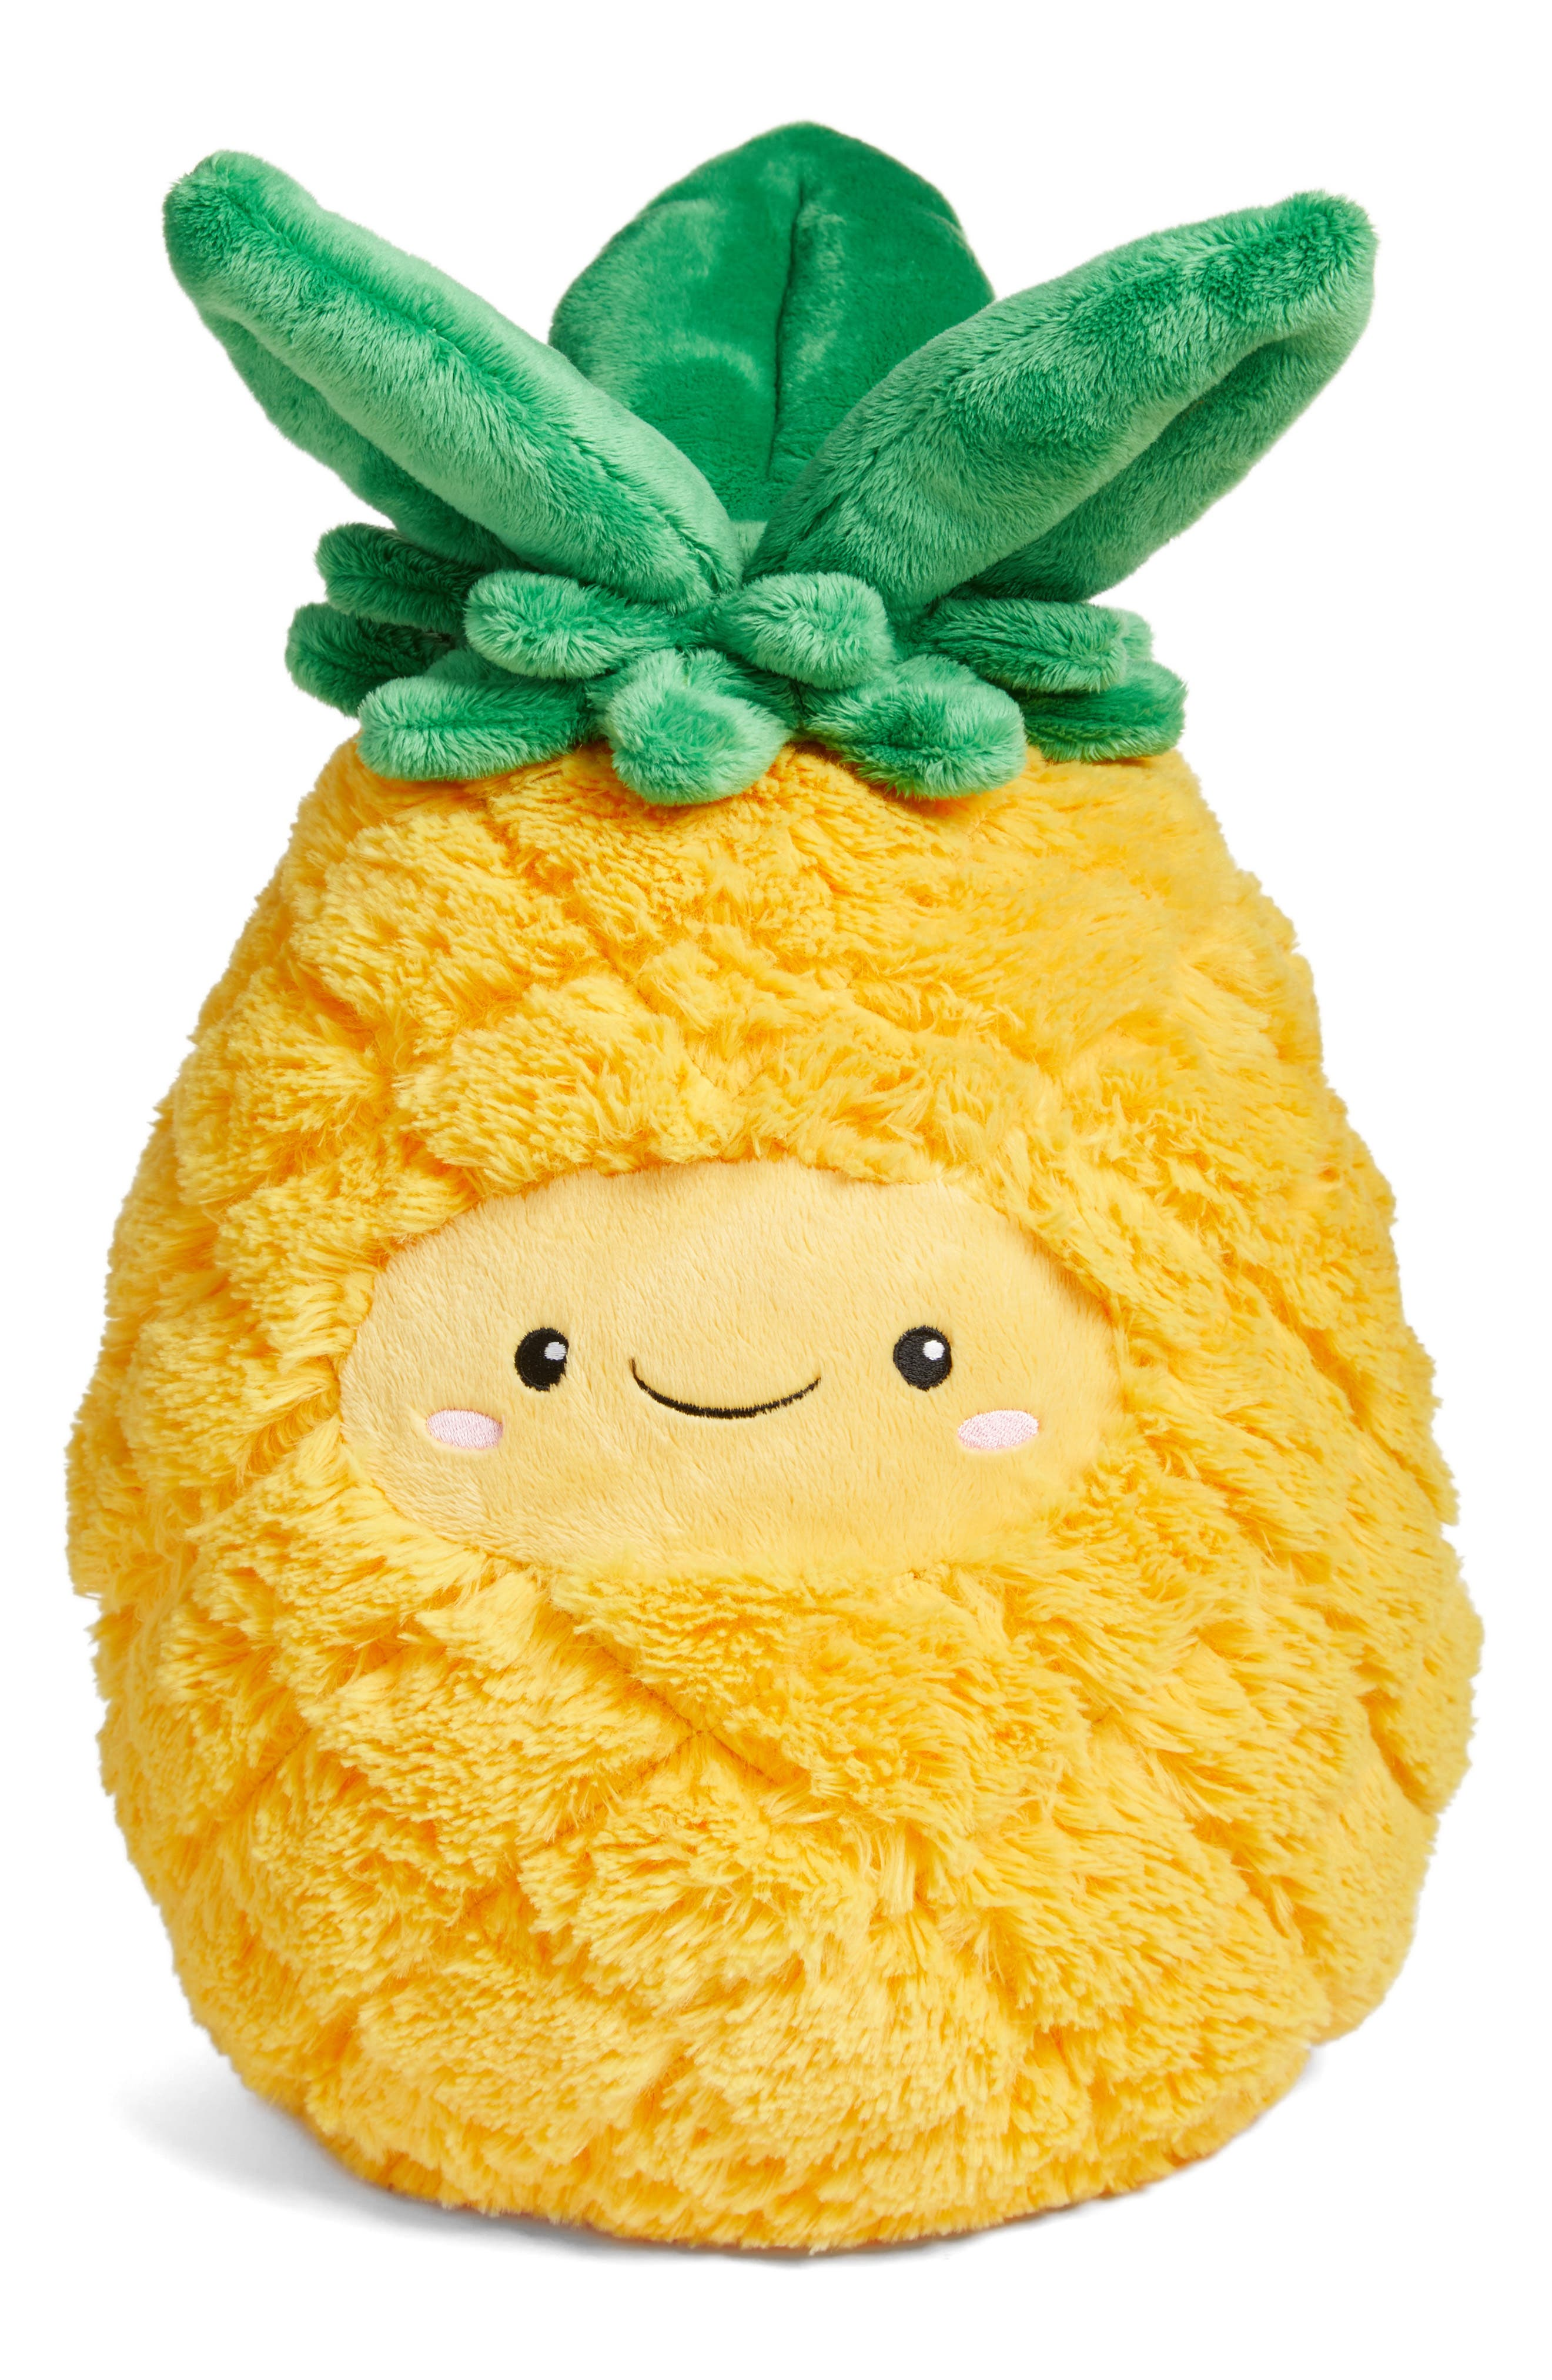 Squishable Pineapple Stuffed Toy